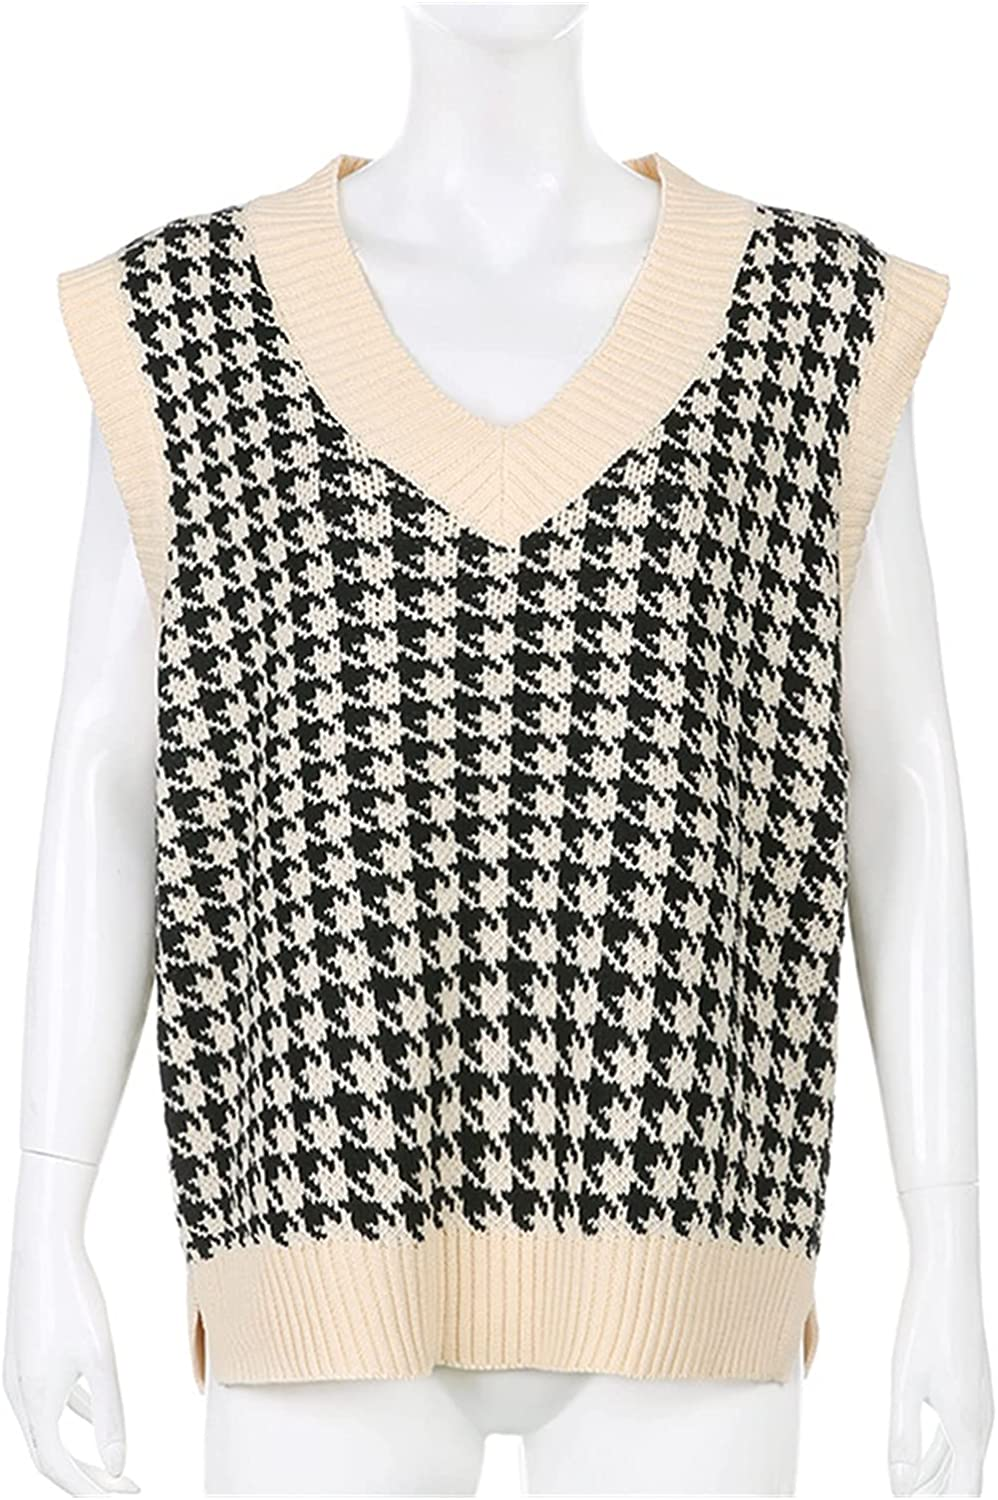 PJRYC Knitted Oversized Sweater Vest Female College Wind Jumper V-Neck Casual Loose Knitwear Autumn (Color : Khaki Black, Size : Small)